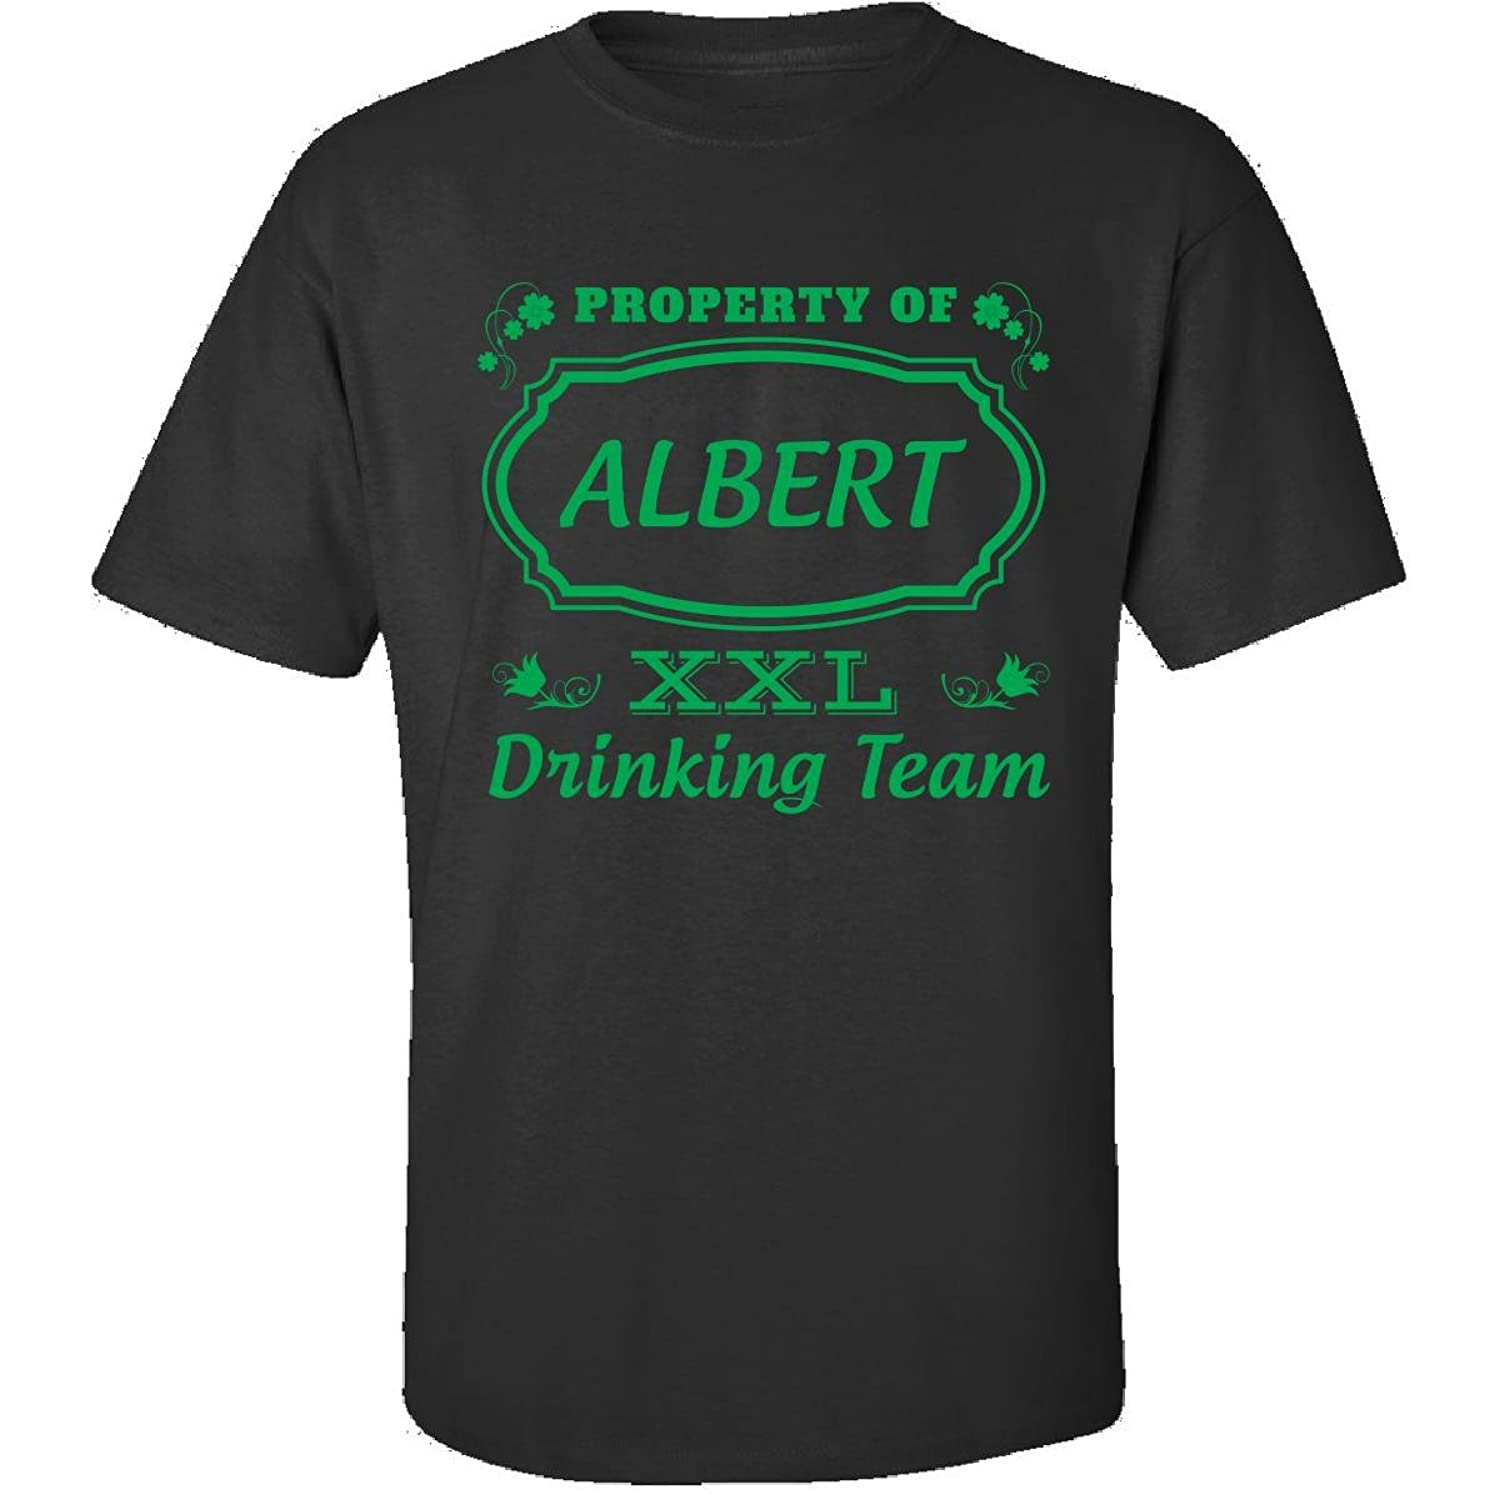 Property Of Albert St Patrick Day Beer Drinking Team - Adult Shirt